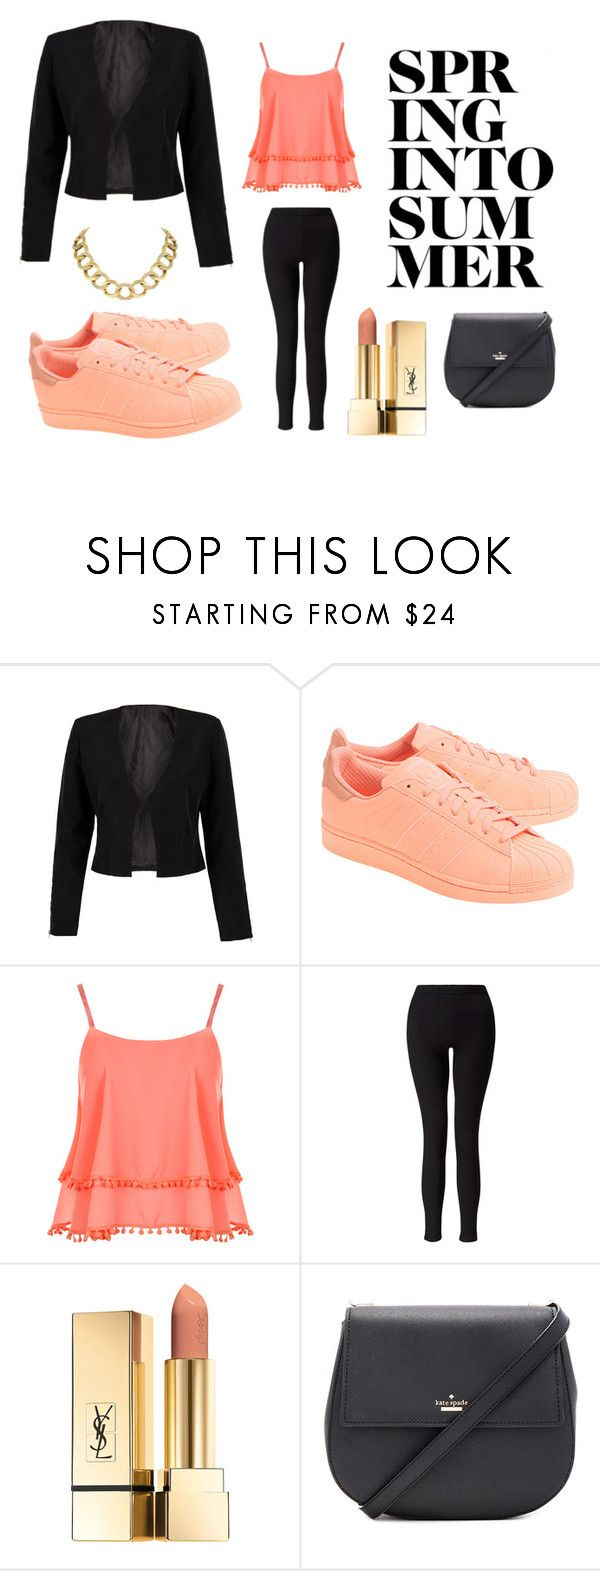 """""""Sin título #2"""" by sofia-c-lopez on Polyvore featuring moda, WithChic, adidas Originals, WearAll, Miss Selfridge, Kate Spade y House of Harlow 1960"""